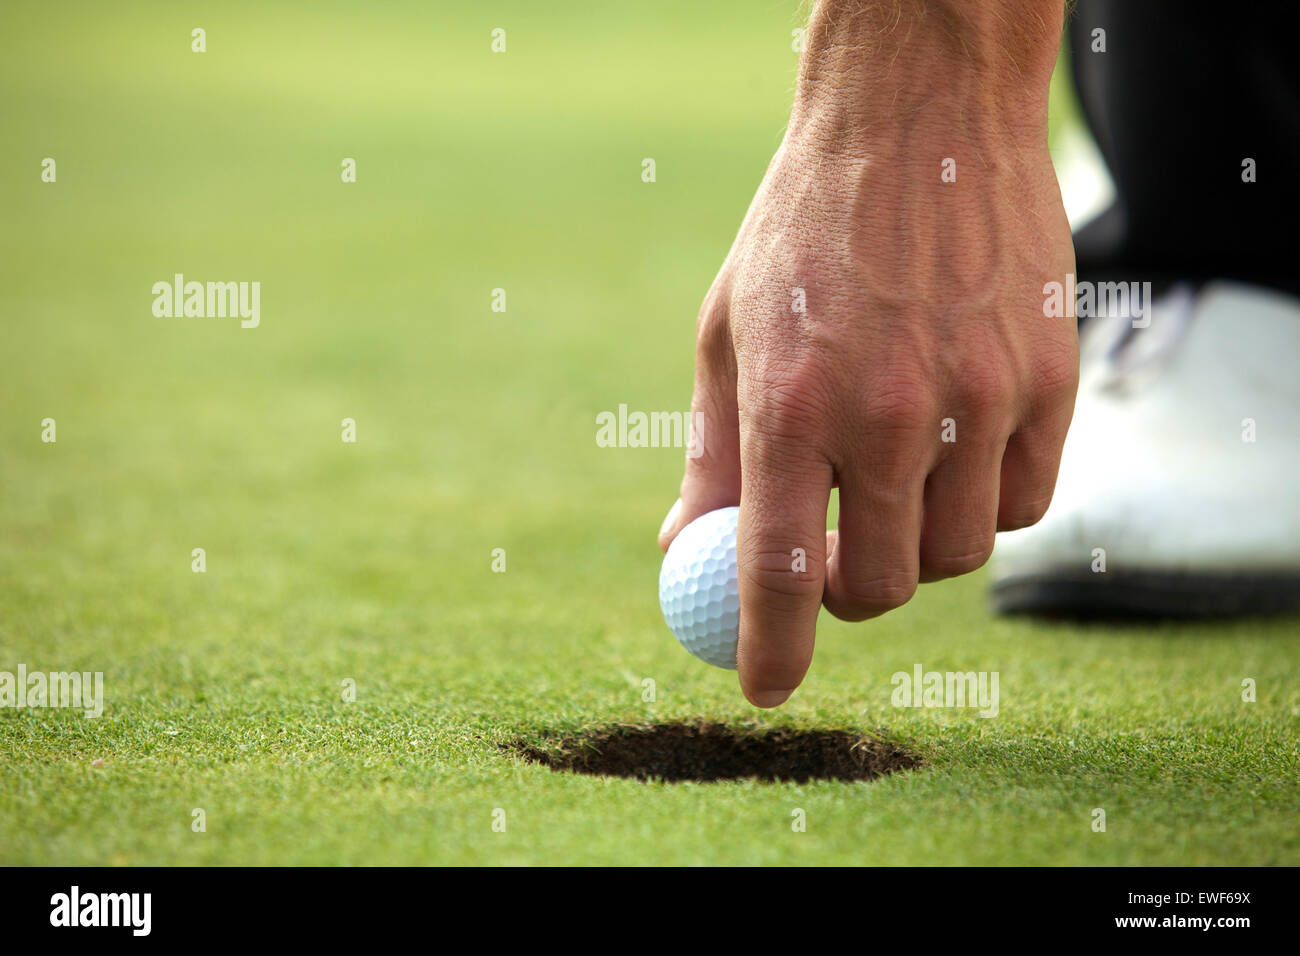 Person holding golf ball, close-up - Stock Image